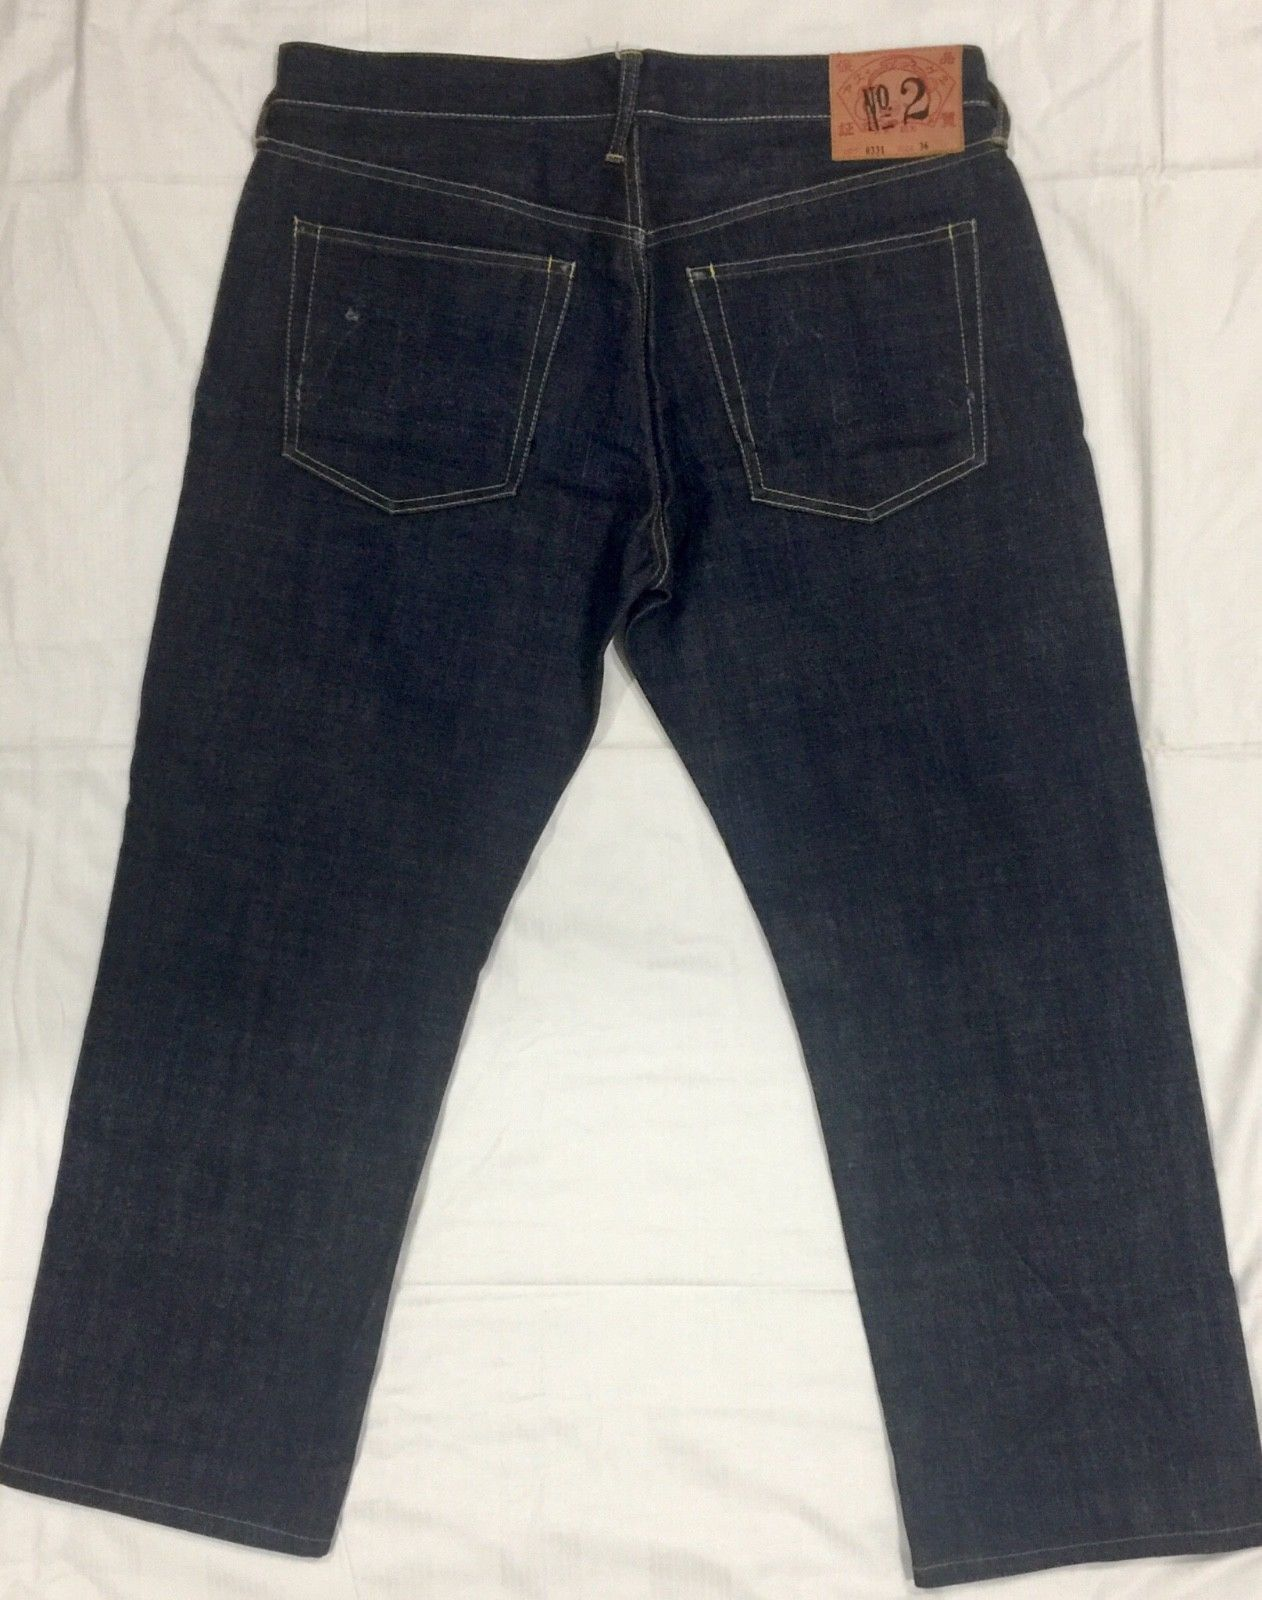 57883aa6cf5a Mens Indigo Genes Evisu Selvedge Jeans Sz 36 Raw Dark Wash Blue EUC